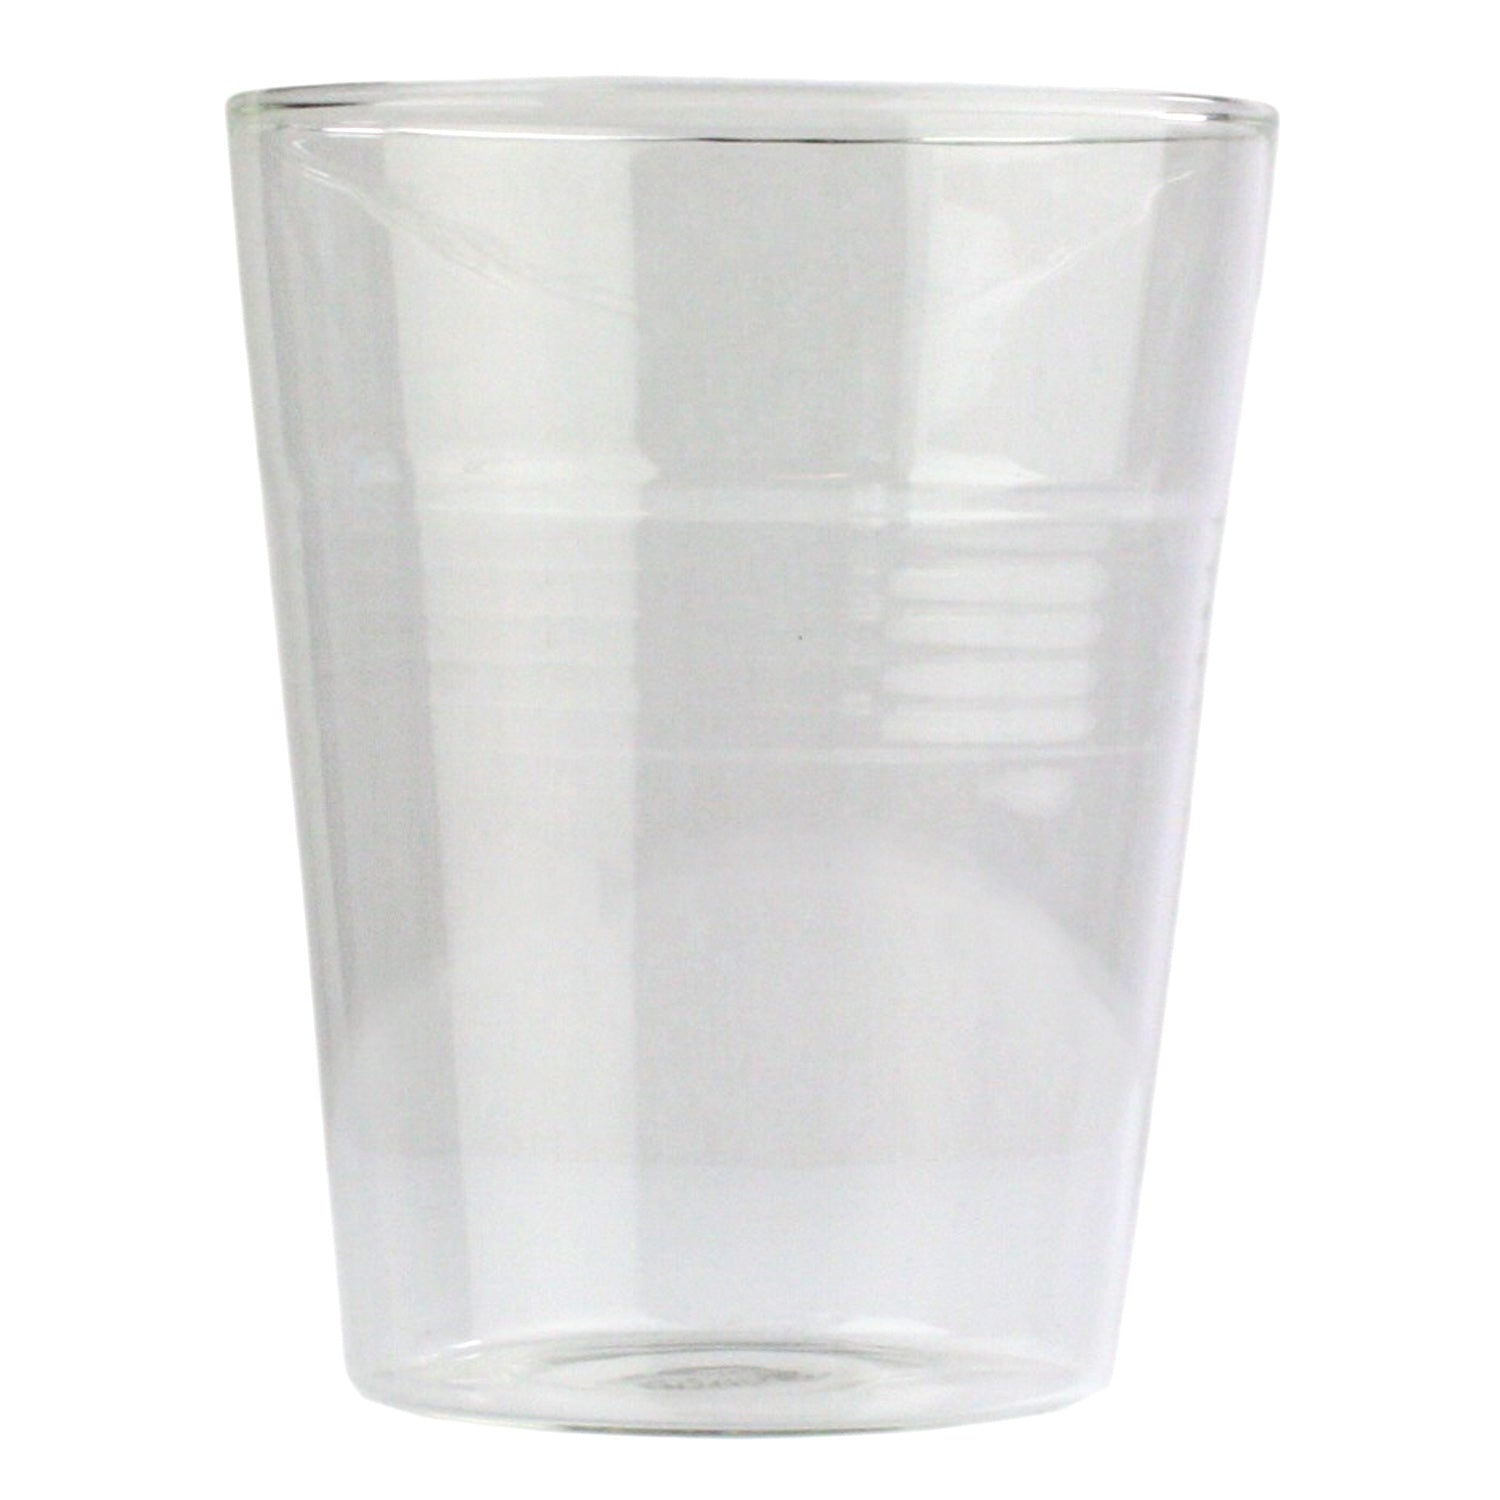 Spencer Cup